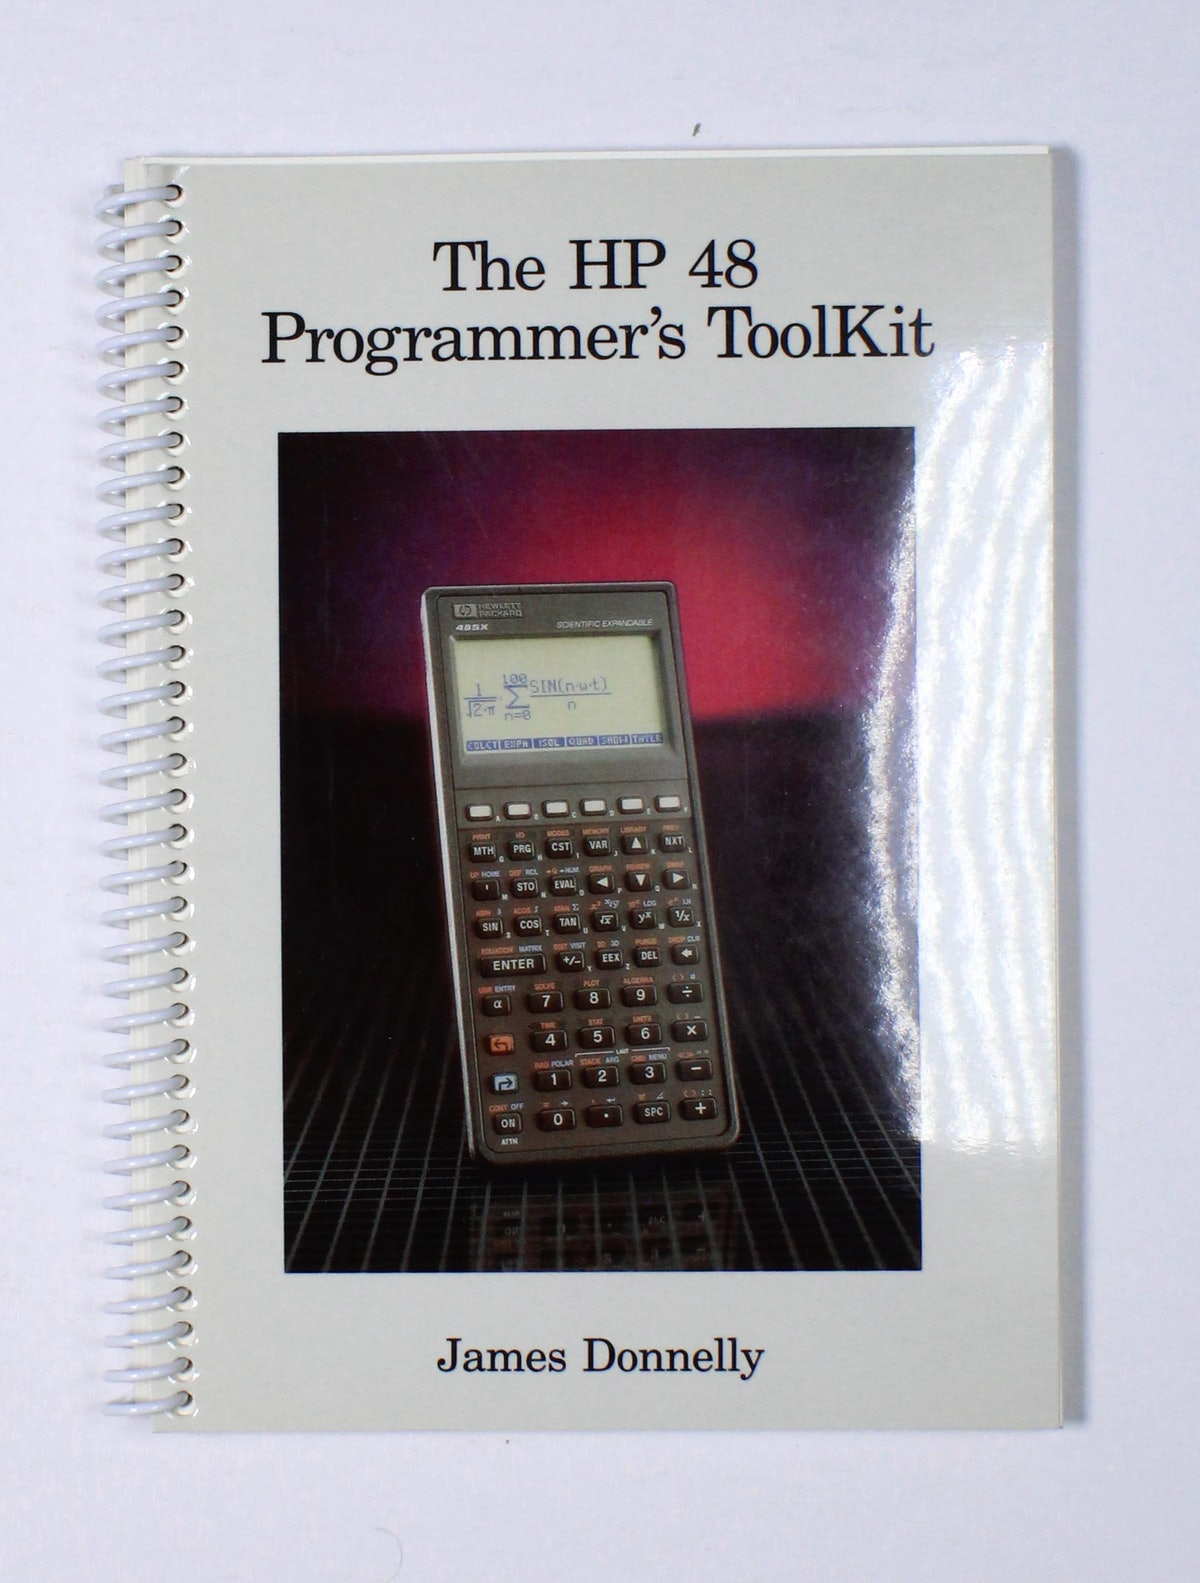 The HP 48 Programmer's ToolKit